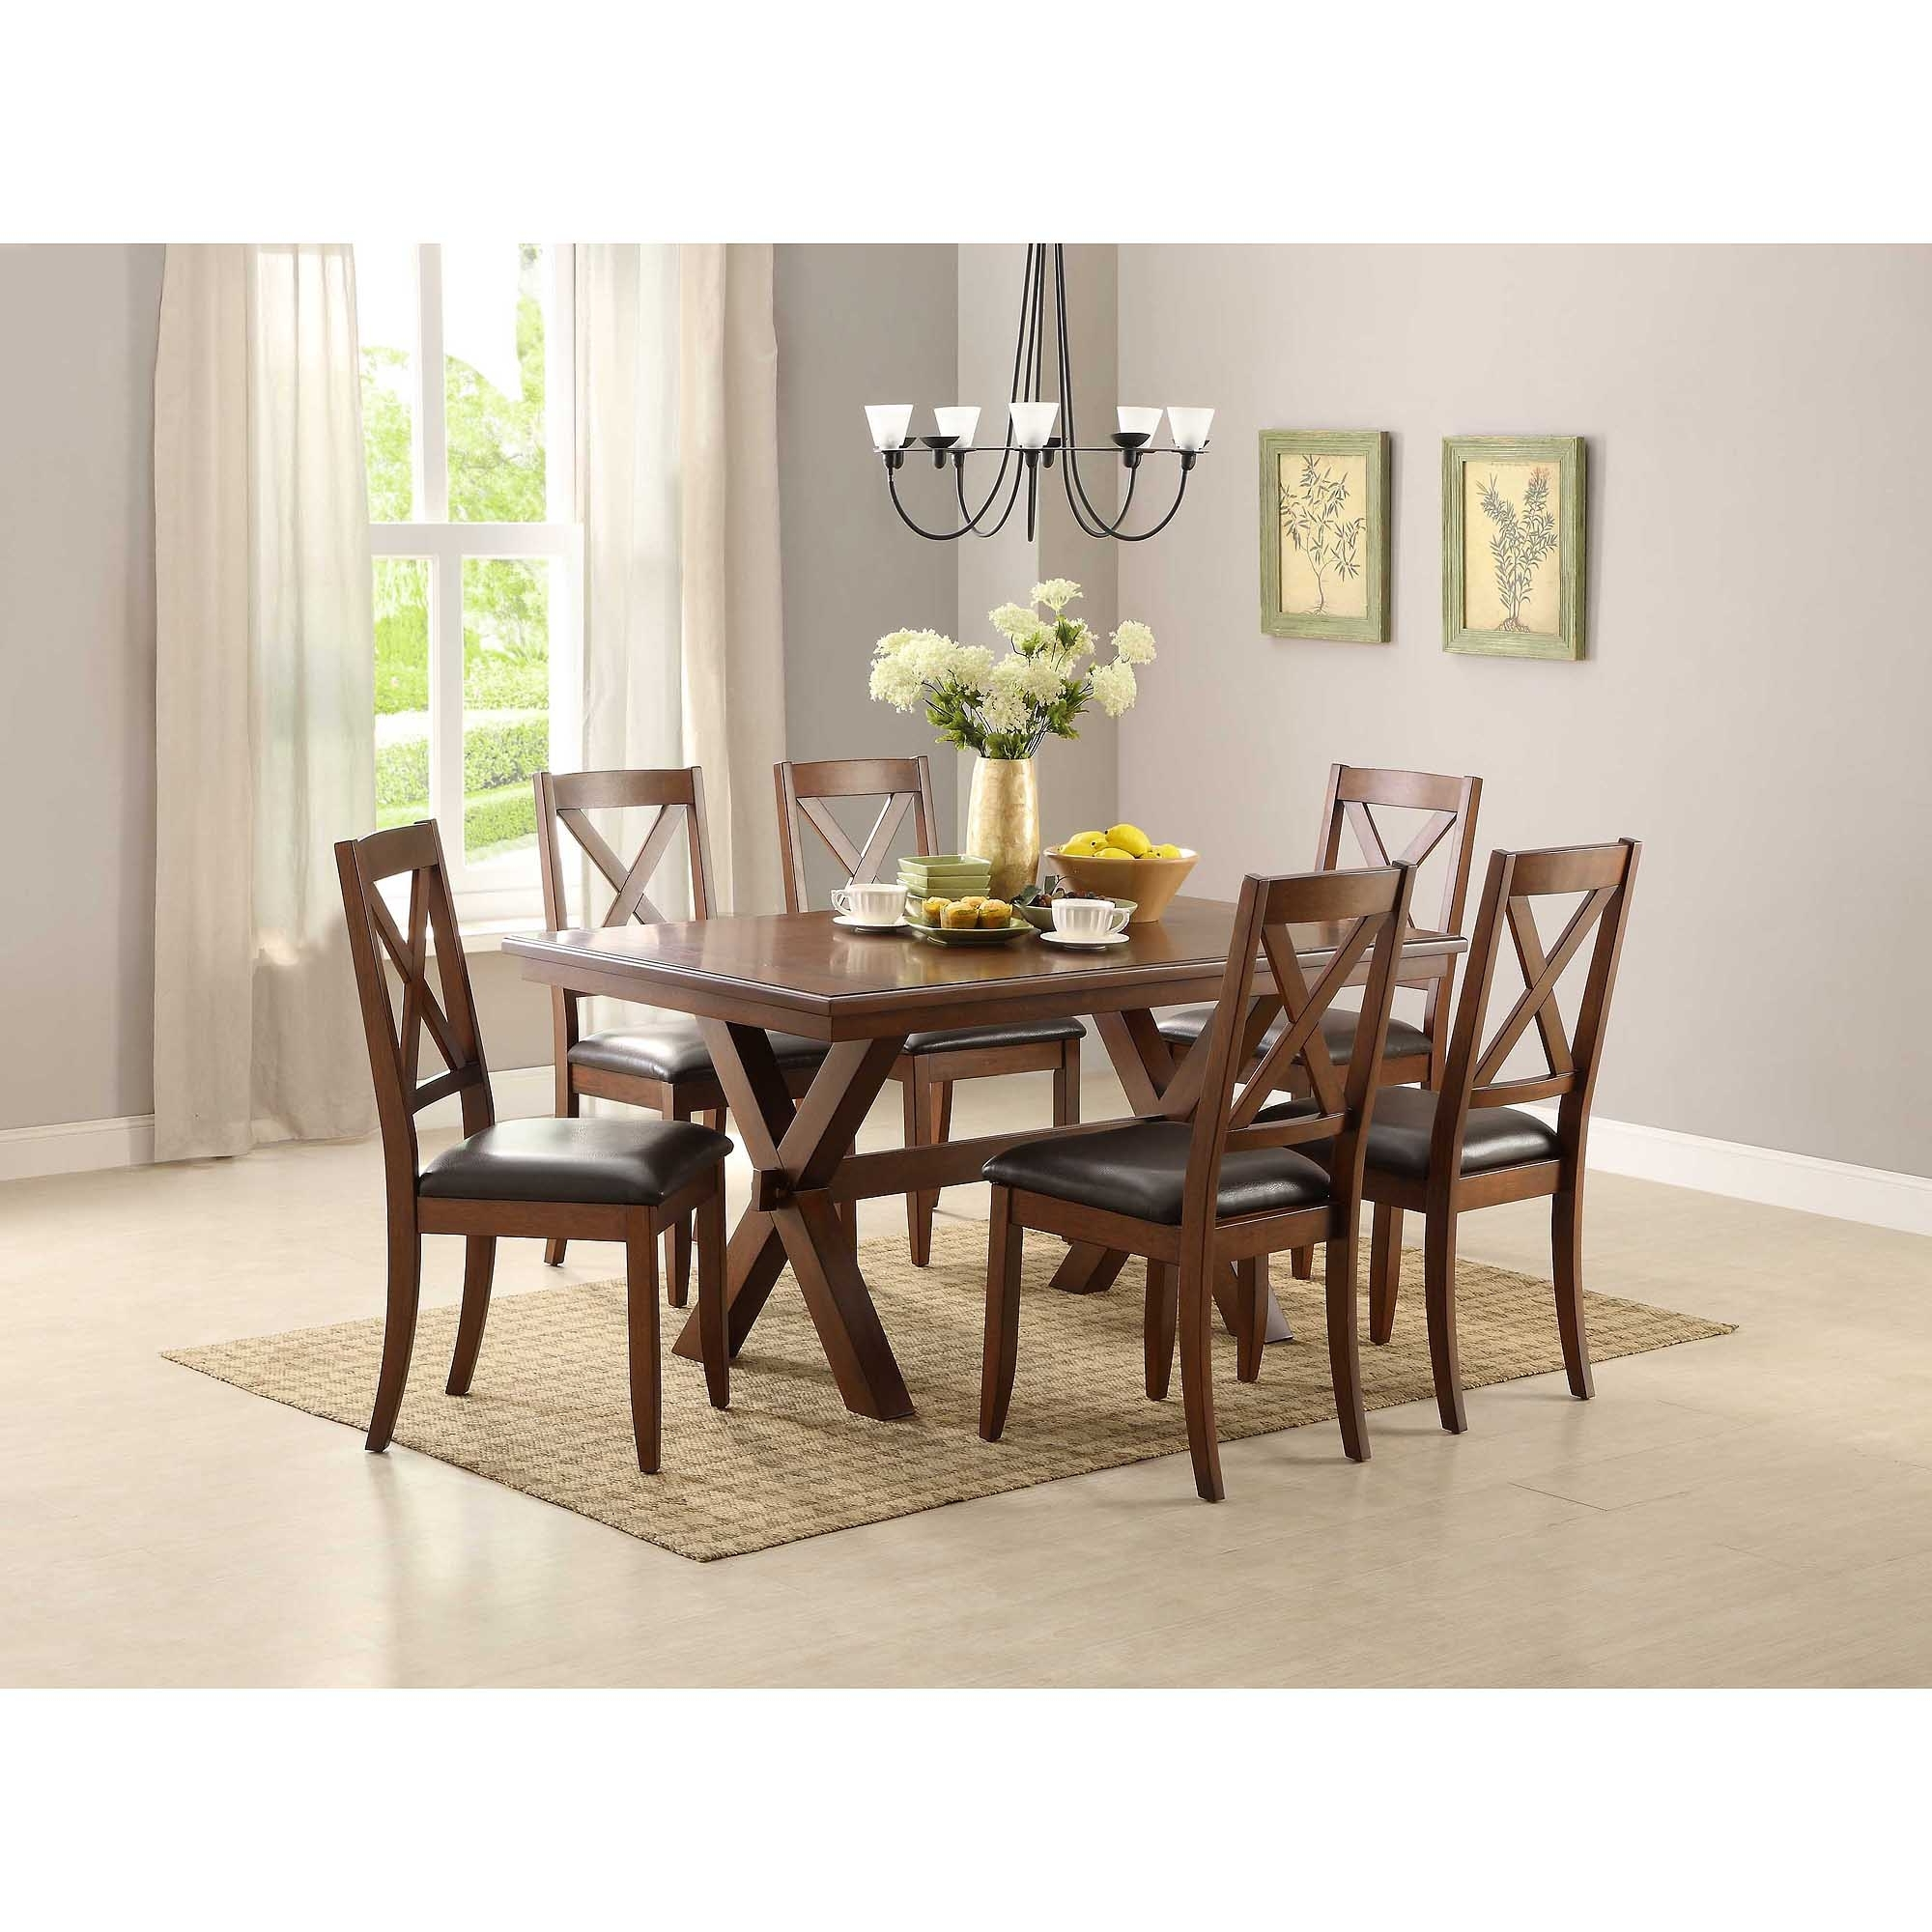 Dining Table Sets For 2 For Most Up To Date Better Homes & Gardens Maddox Crossing Dining Chair, Set Of 2, Brown (Gallery 11 of 25)